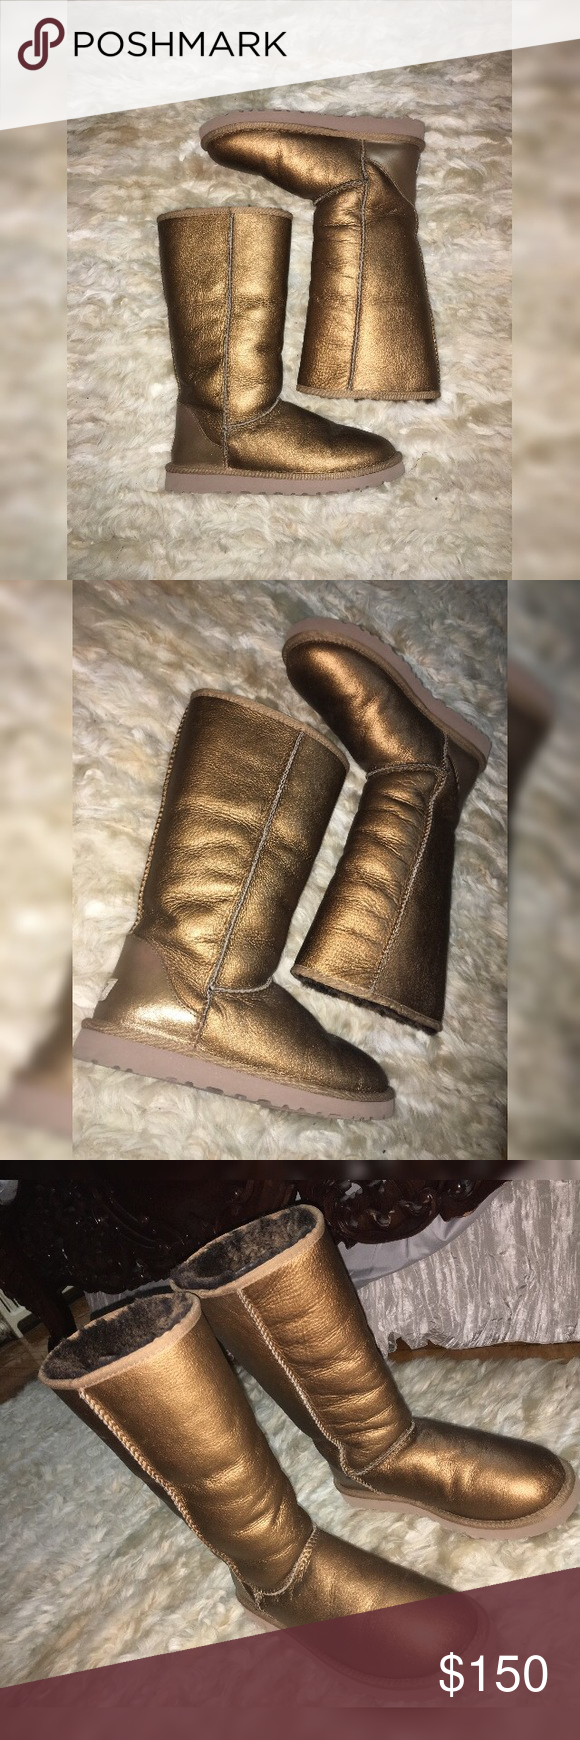 Ugg Gold/Bronze Long Boots Limited Edition Sz.8 Beautiful Limited Edition Bronze / Gold long Uggs in size 8 . These Uggs pop in color and will stand out . They have only been worn in the house and then put back in the closet . They are in absolutely perfect and Brand New condition . They where bought strait from the UGG store in New Jersey UGG Shoes Over the Knee Boots